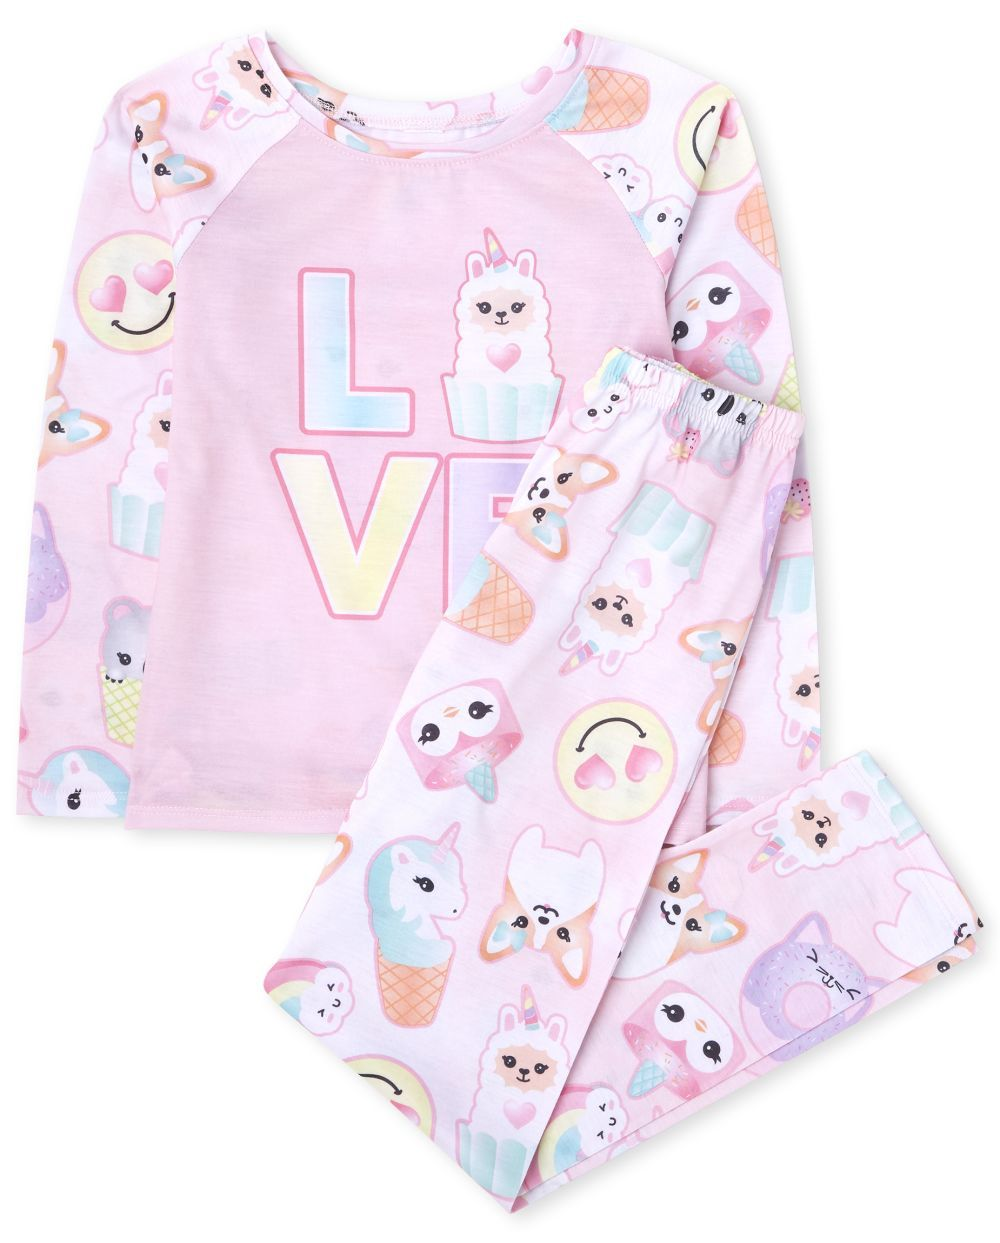 Girls Squishies Love Pajamas. Made of 100% polyester jersey.Note: for child's safety  garment should fit snugly or be flame resistant. This garment is flame resistant..Crew neck.'LOVE' graphic design at front.Squishies print at sleeves and back.Pants have pull-on elasticized waistband.Allover squishies print.Imported.